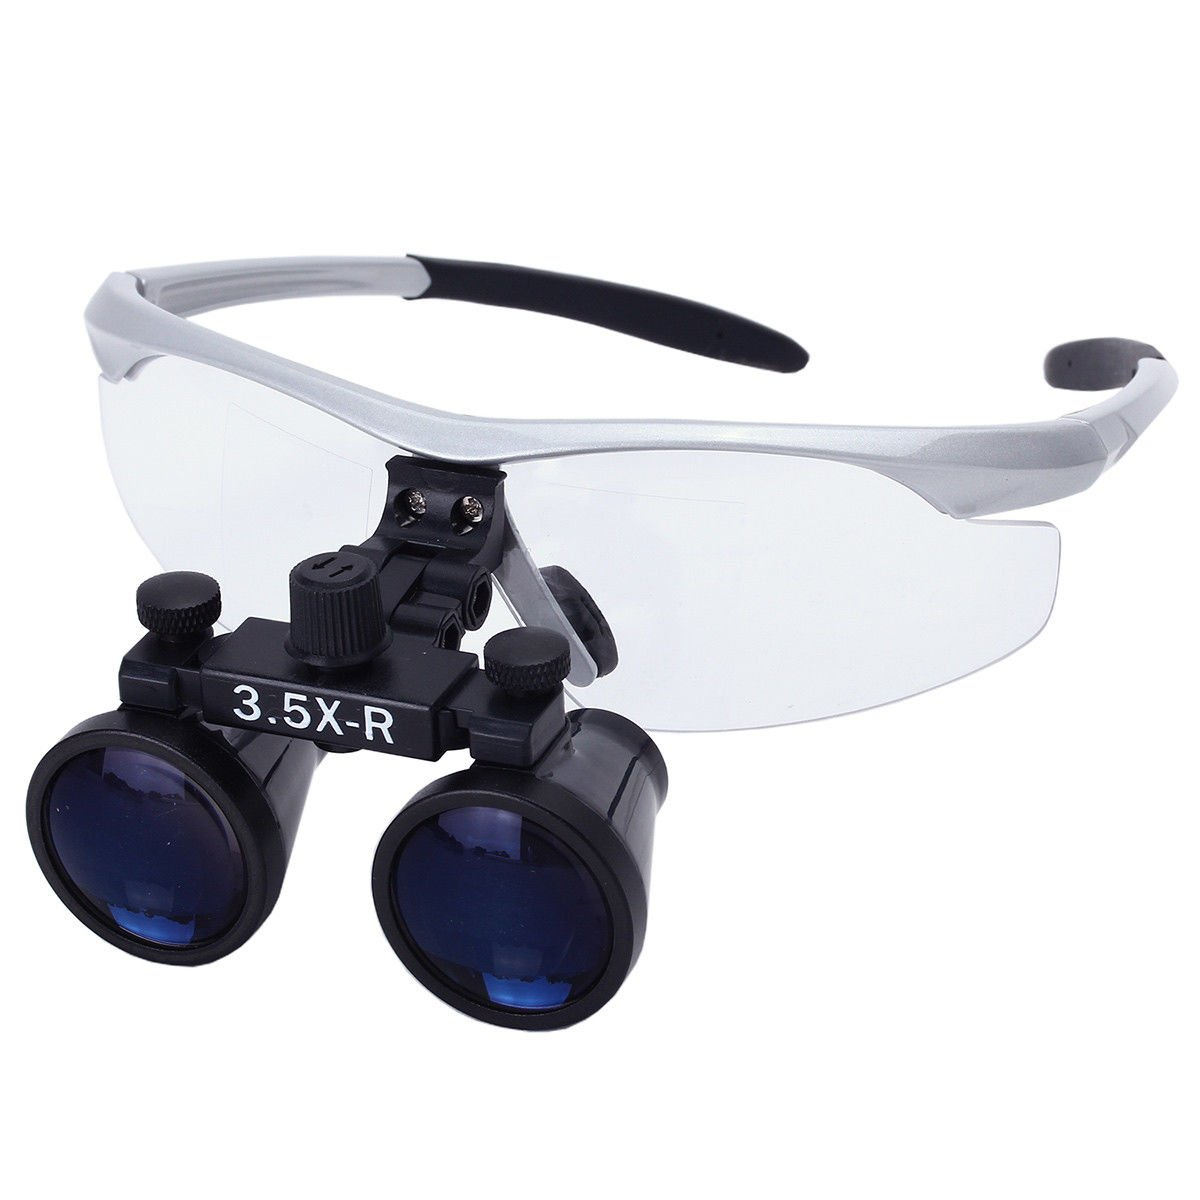 Silver LED Head Light Lamp Ocean Aquarius Portable Surgical Magnifier Binocular Loupes 3.5X-R